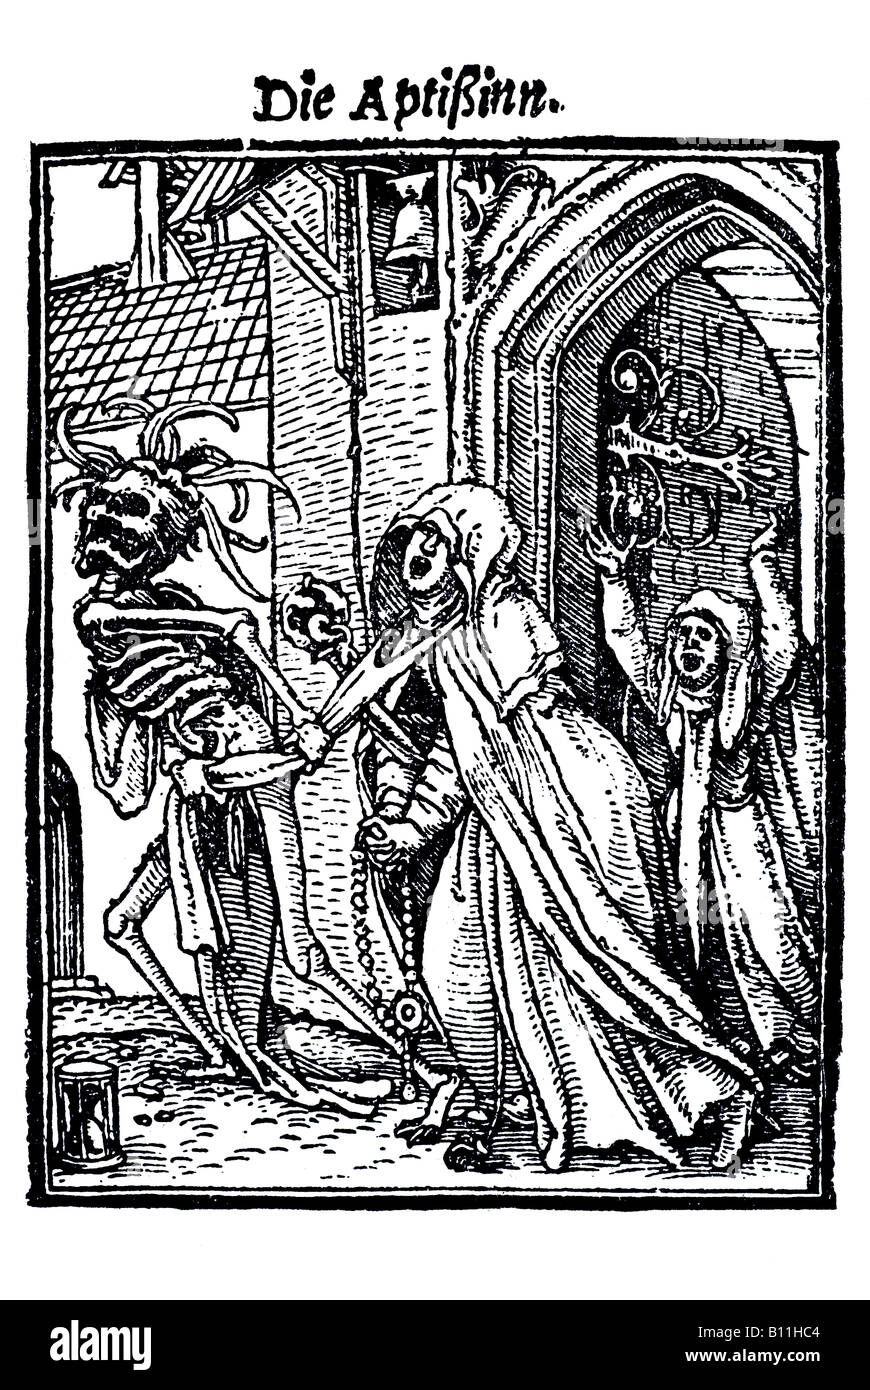 The abbess, Hans Holbein the younger, Danse Macabre, 1538, Germany